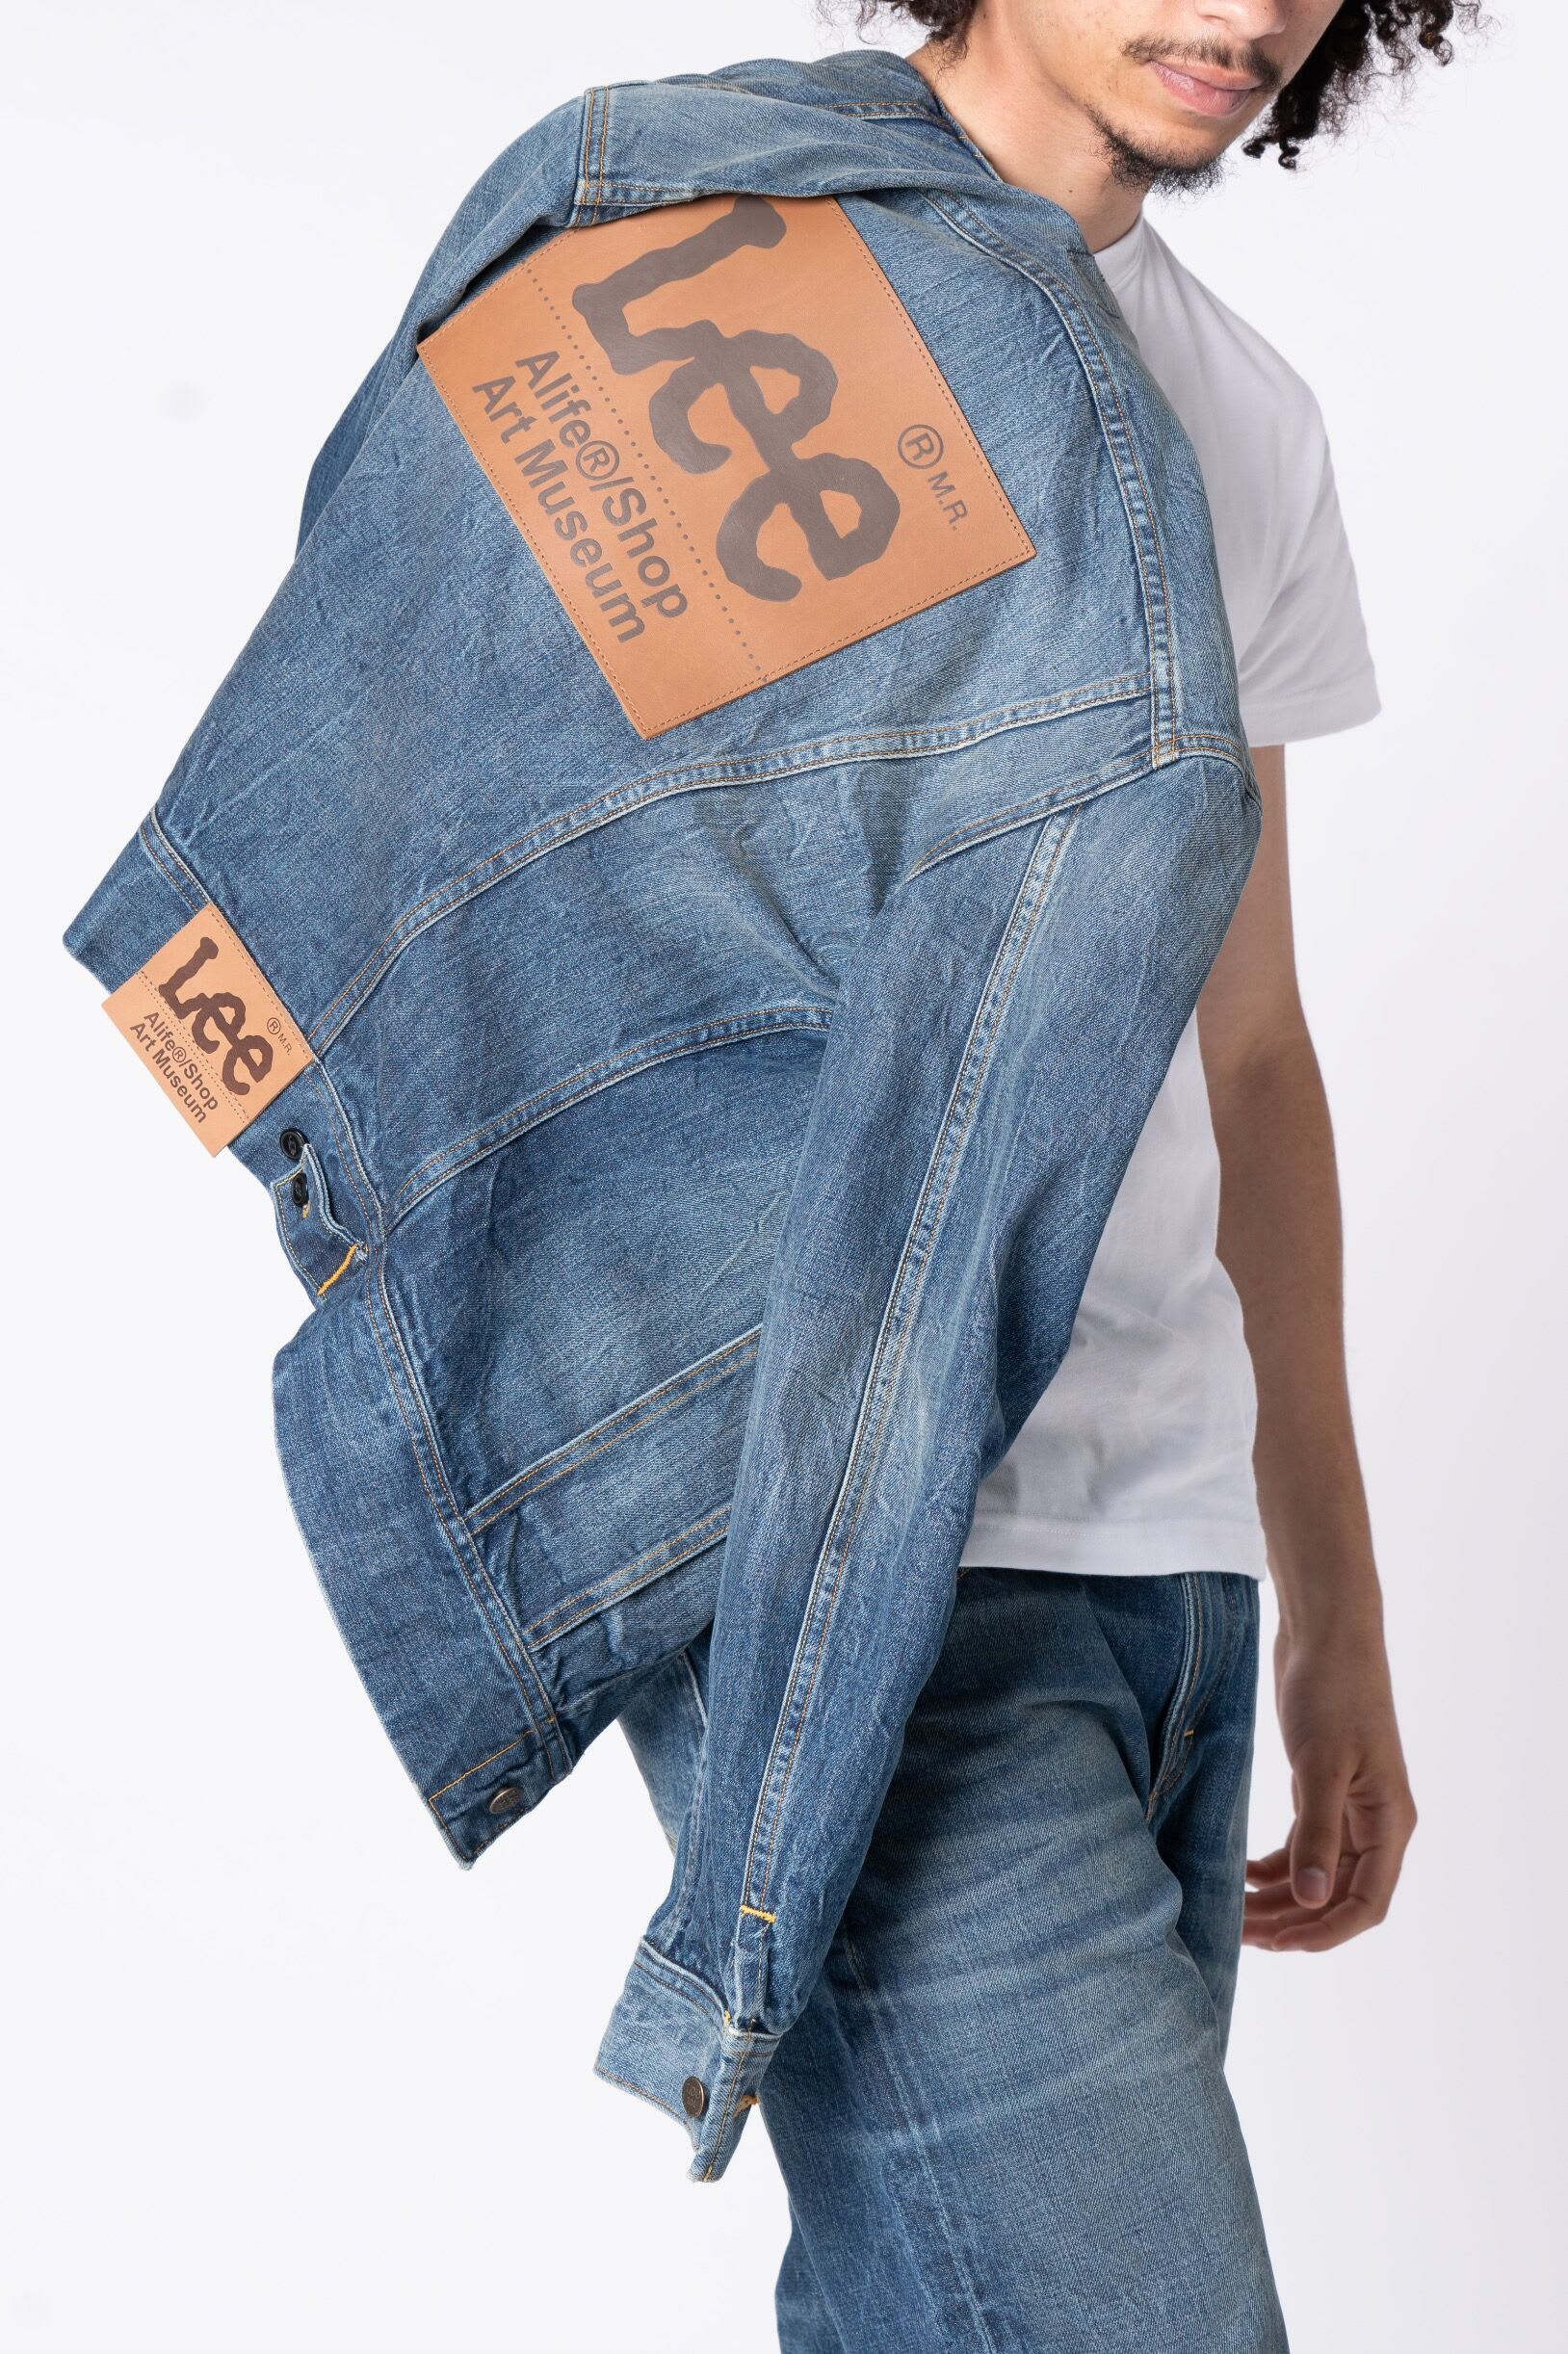 Alife x Lee Denim Leather Patch Jean Jacket